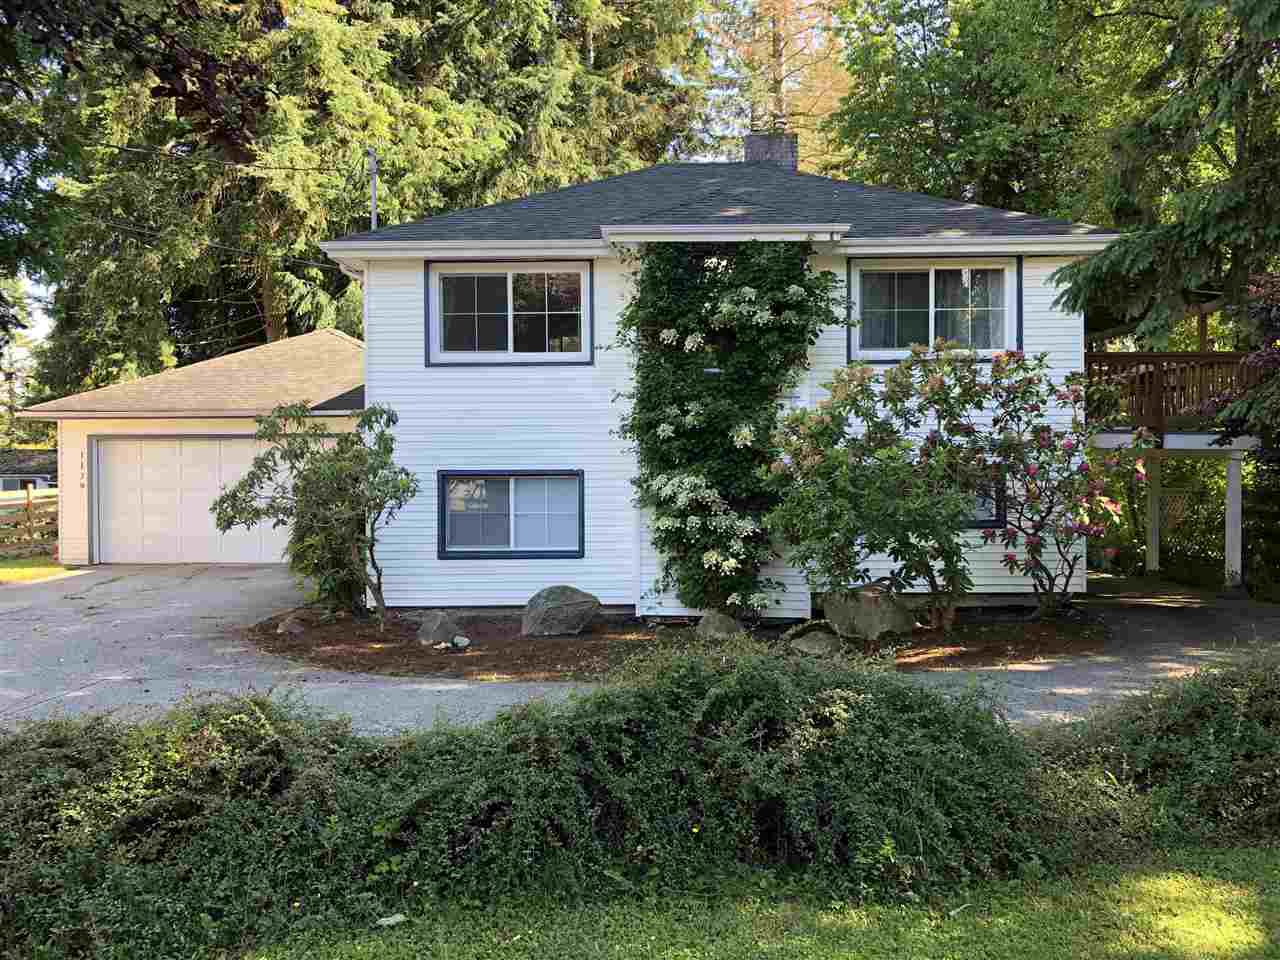 Photo 2: Photos: 1119 CHASTER Road in Gibsons: Gibsons & Area House for sale (Sunshine Coast)  : MLS®# R2425365